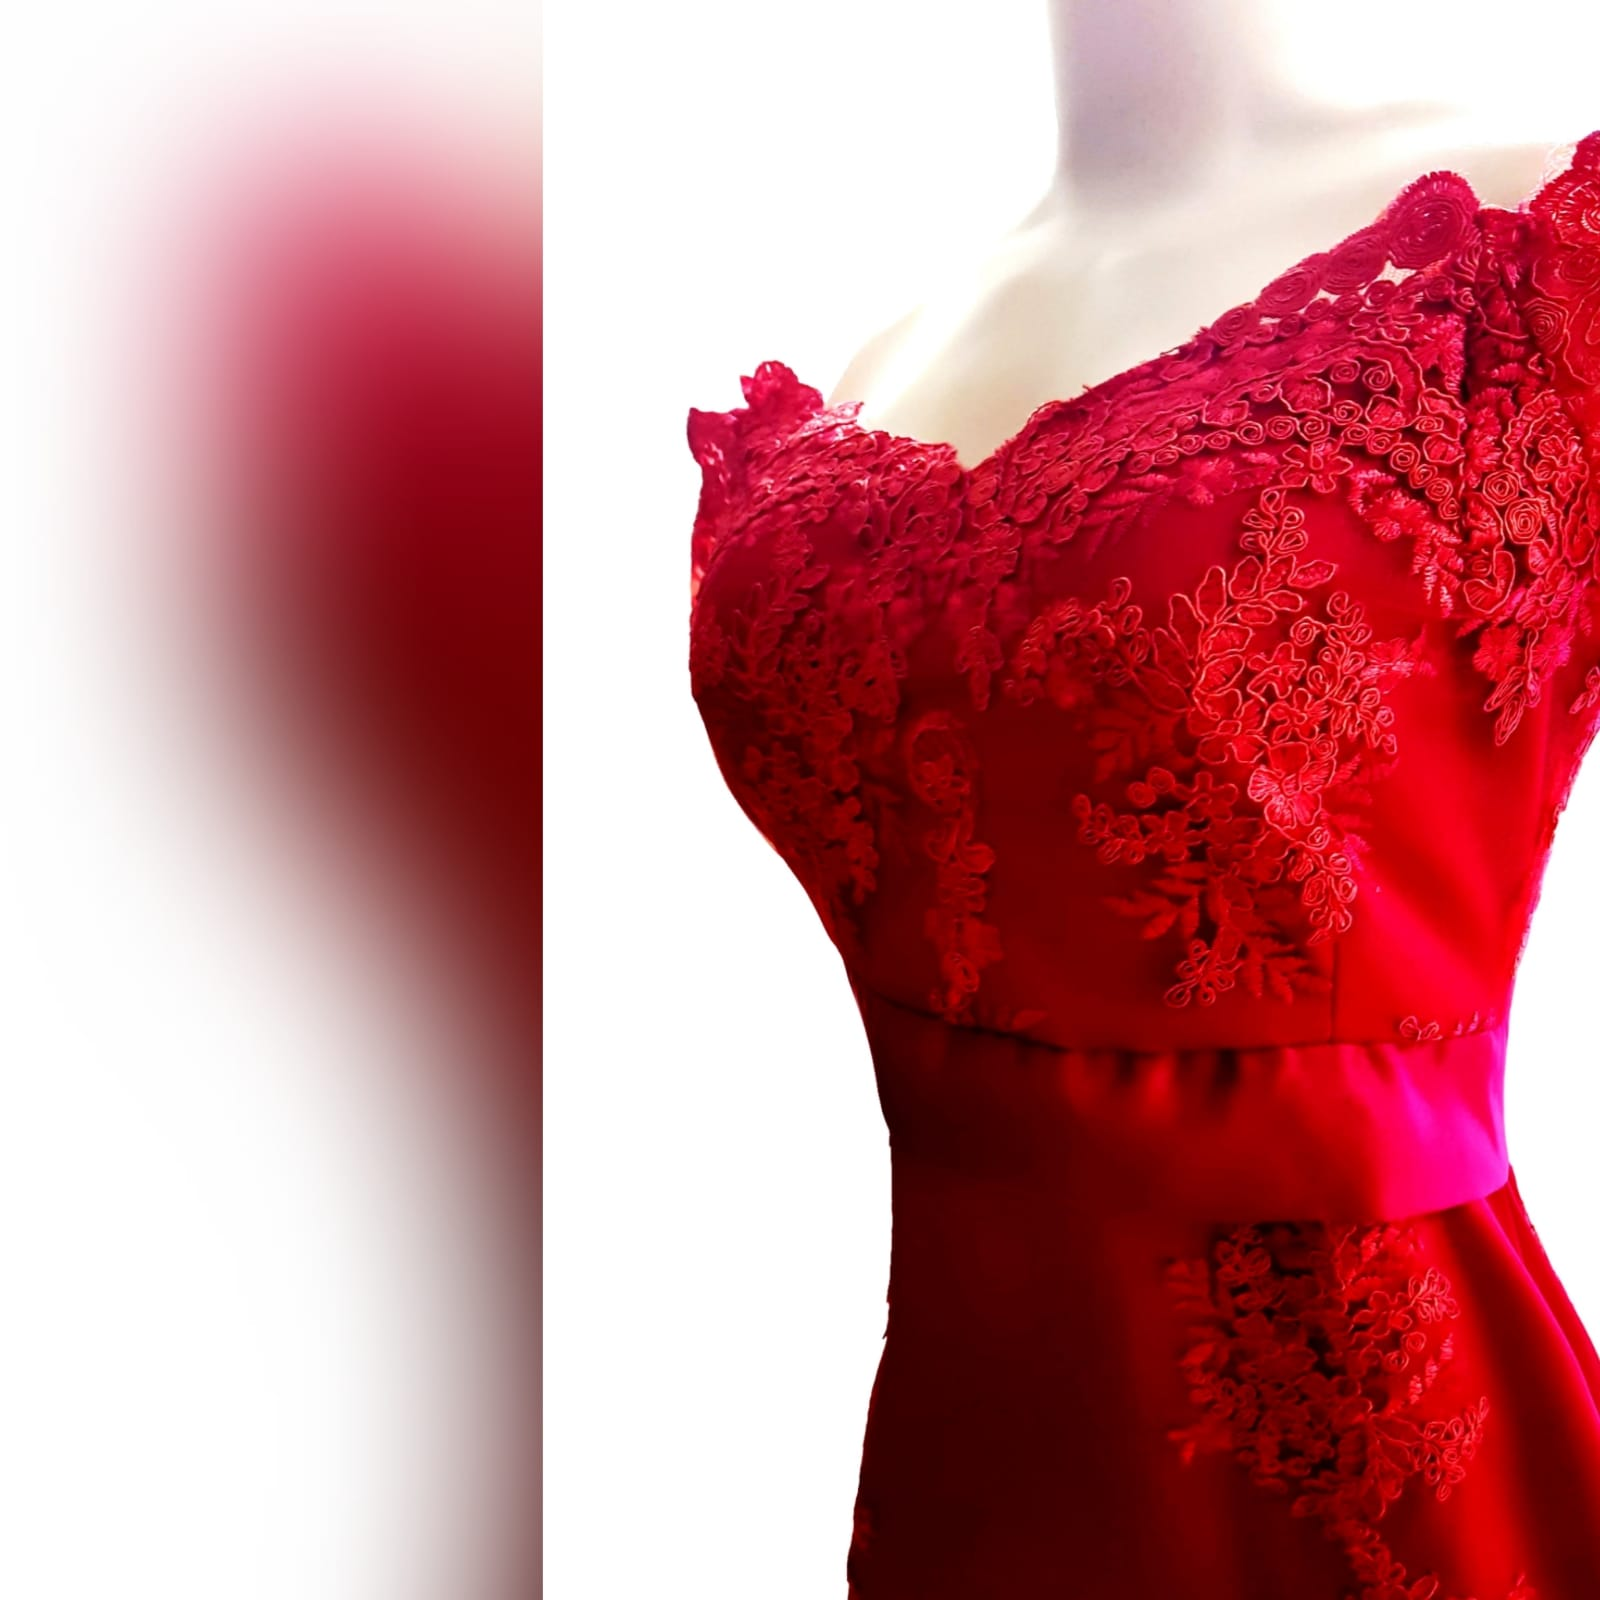 Gorgeous red soft mermaid dress 8 <blockquote><em>you don't have to play masculine to be a strong woman. – mary elizabeth winstead</em></blockquote> a gorgeous red soft mermaid dress created for my client's special event. A dress that turns heads, due to its amazing colour, elegance and sophistication. An off shoulder neckline with off shoulder cap sleeves in lace, with button detail running down the back. A satin belt accentuates the waistline. A wide sheer lace train to add a sensual and dramatic look to the dress.